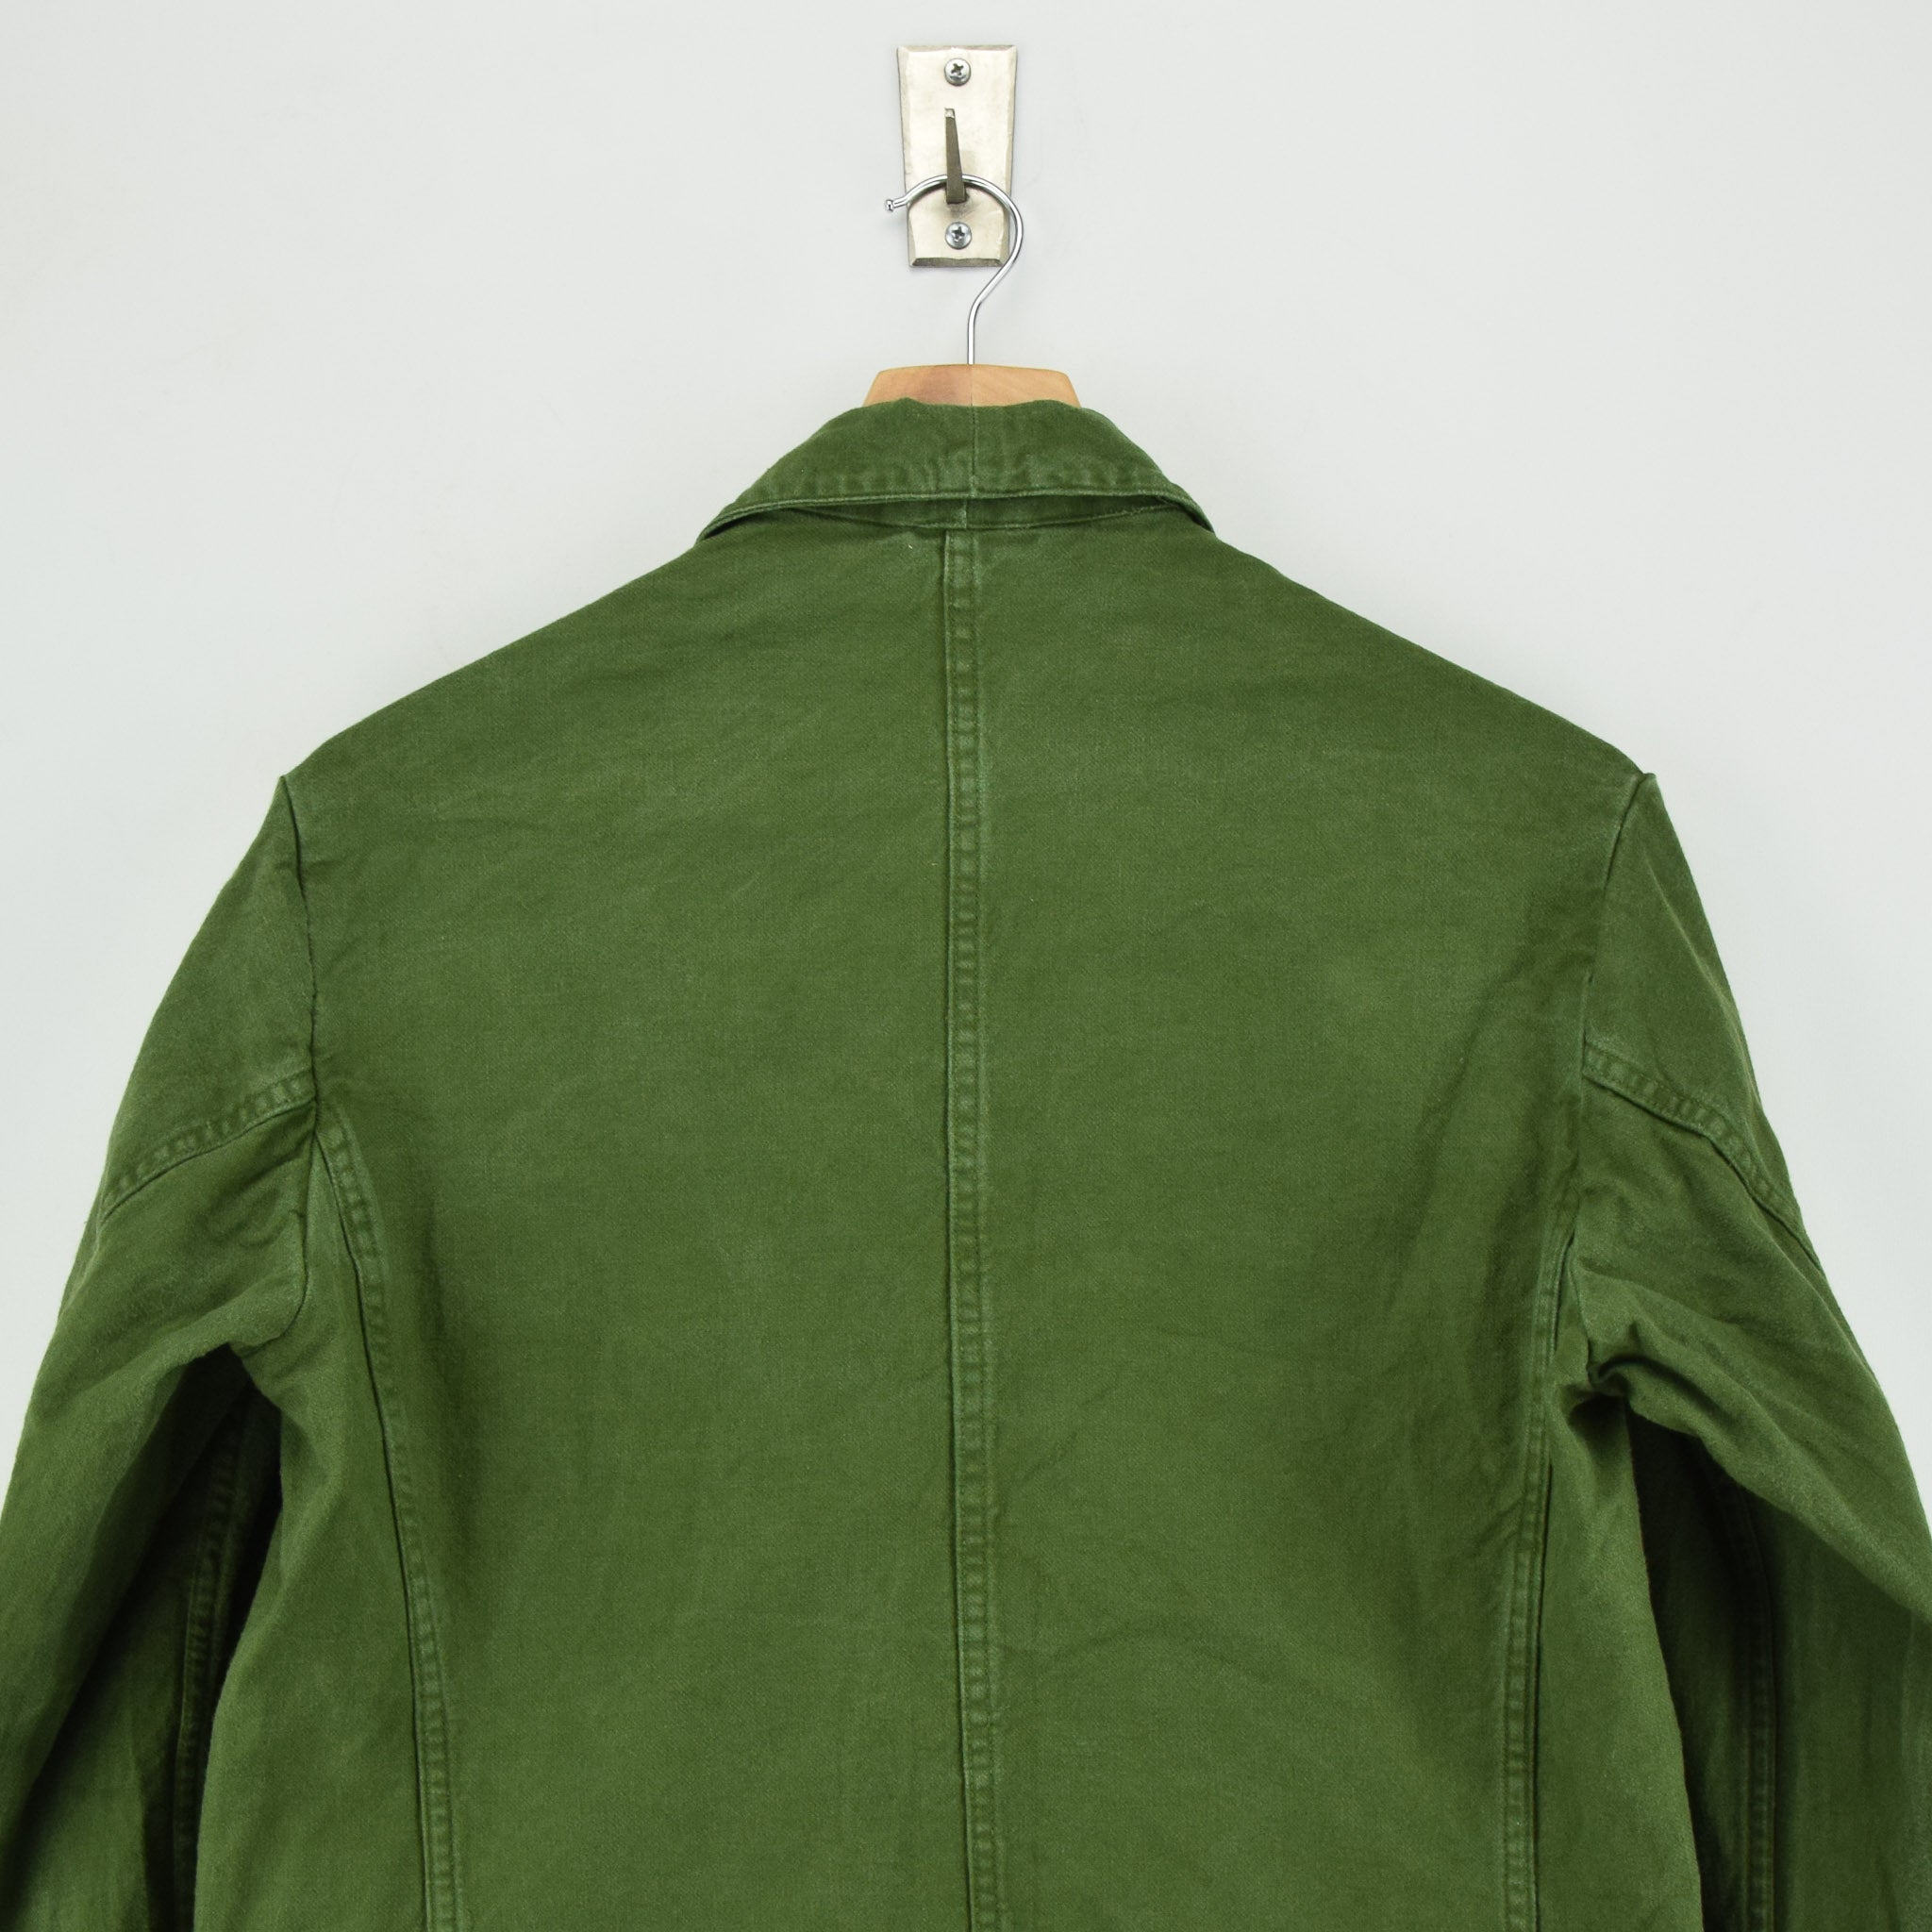 Vintage 60s Swedish Military Field Jacket Worker Style Distressed Green S shoulders